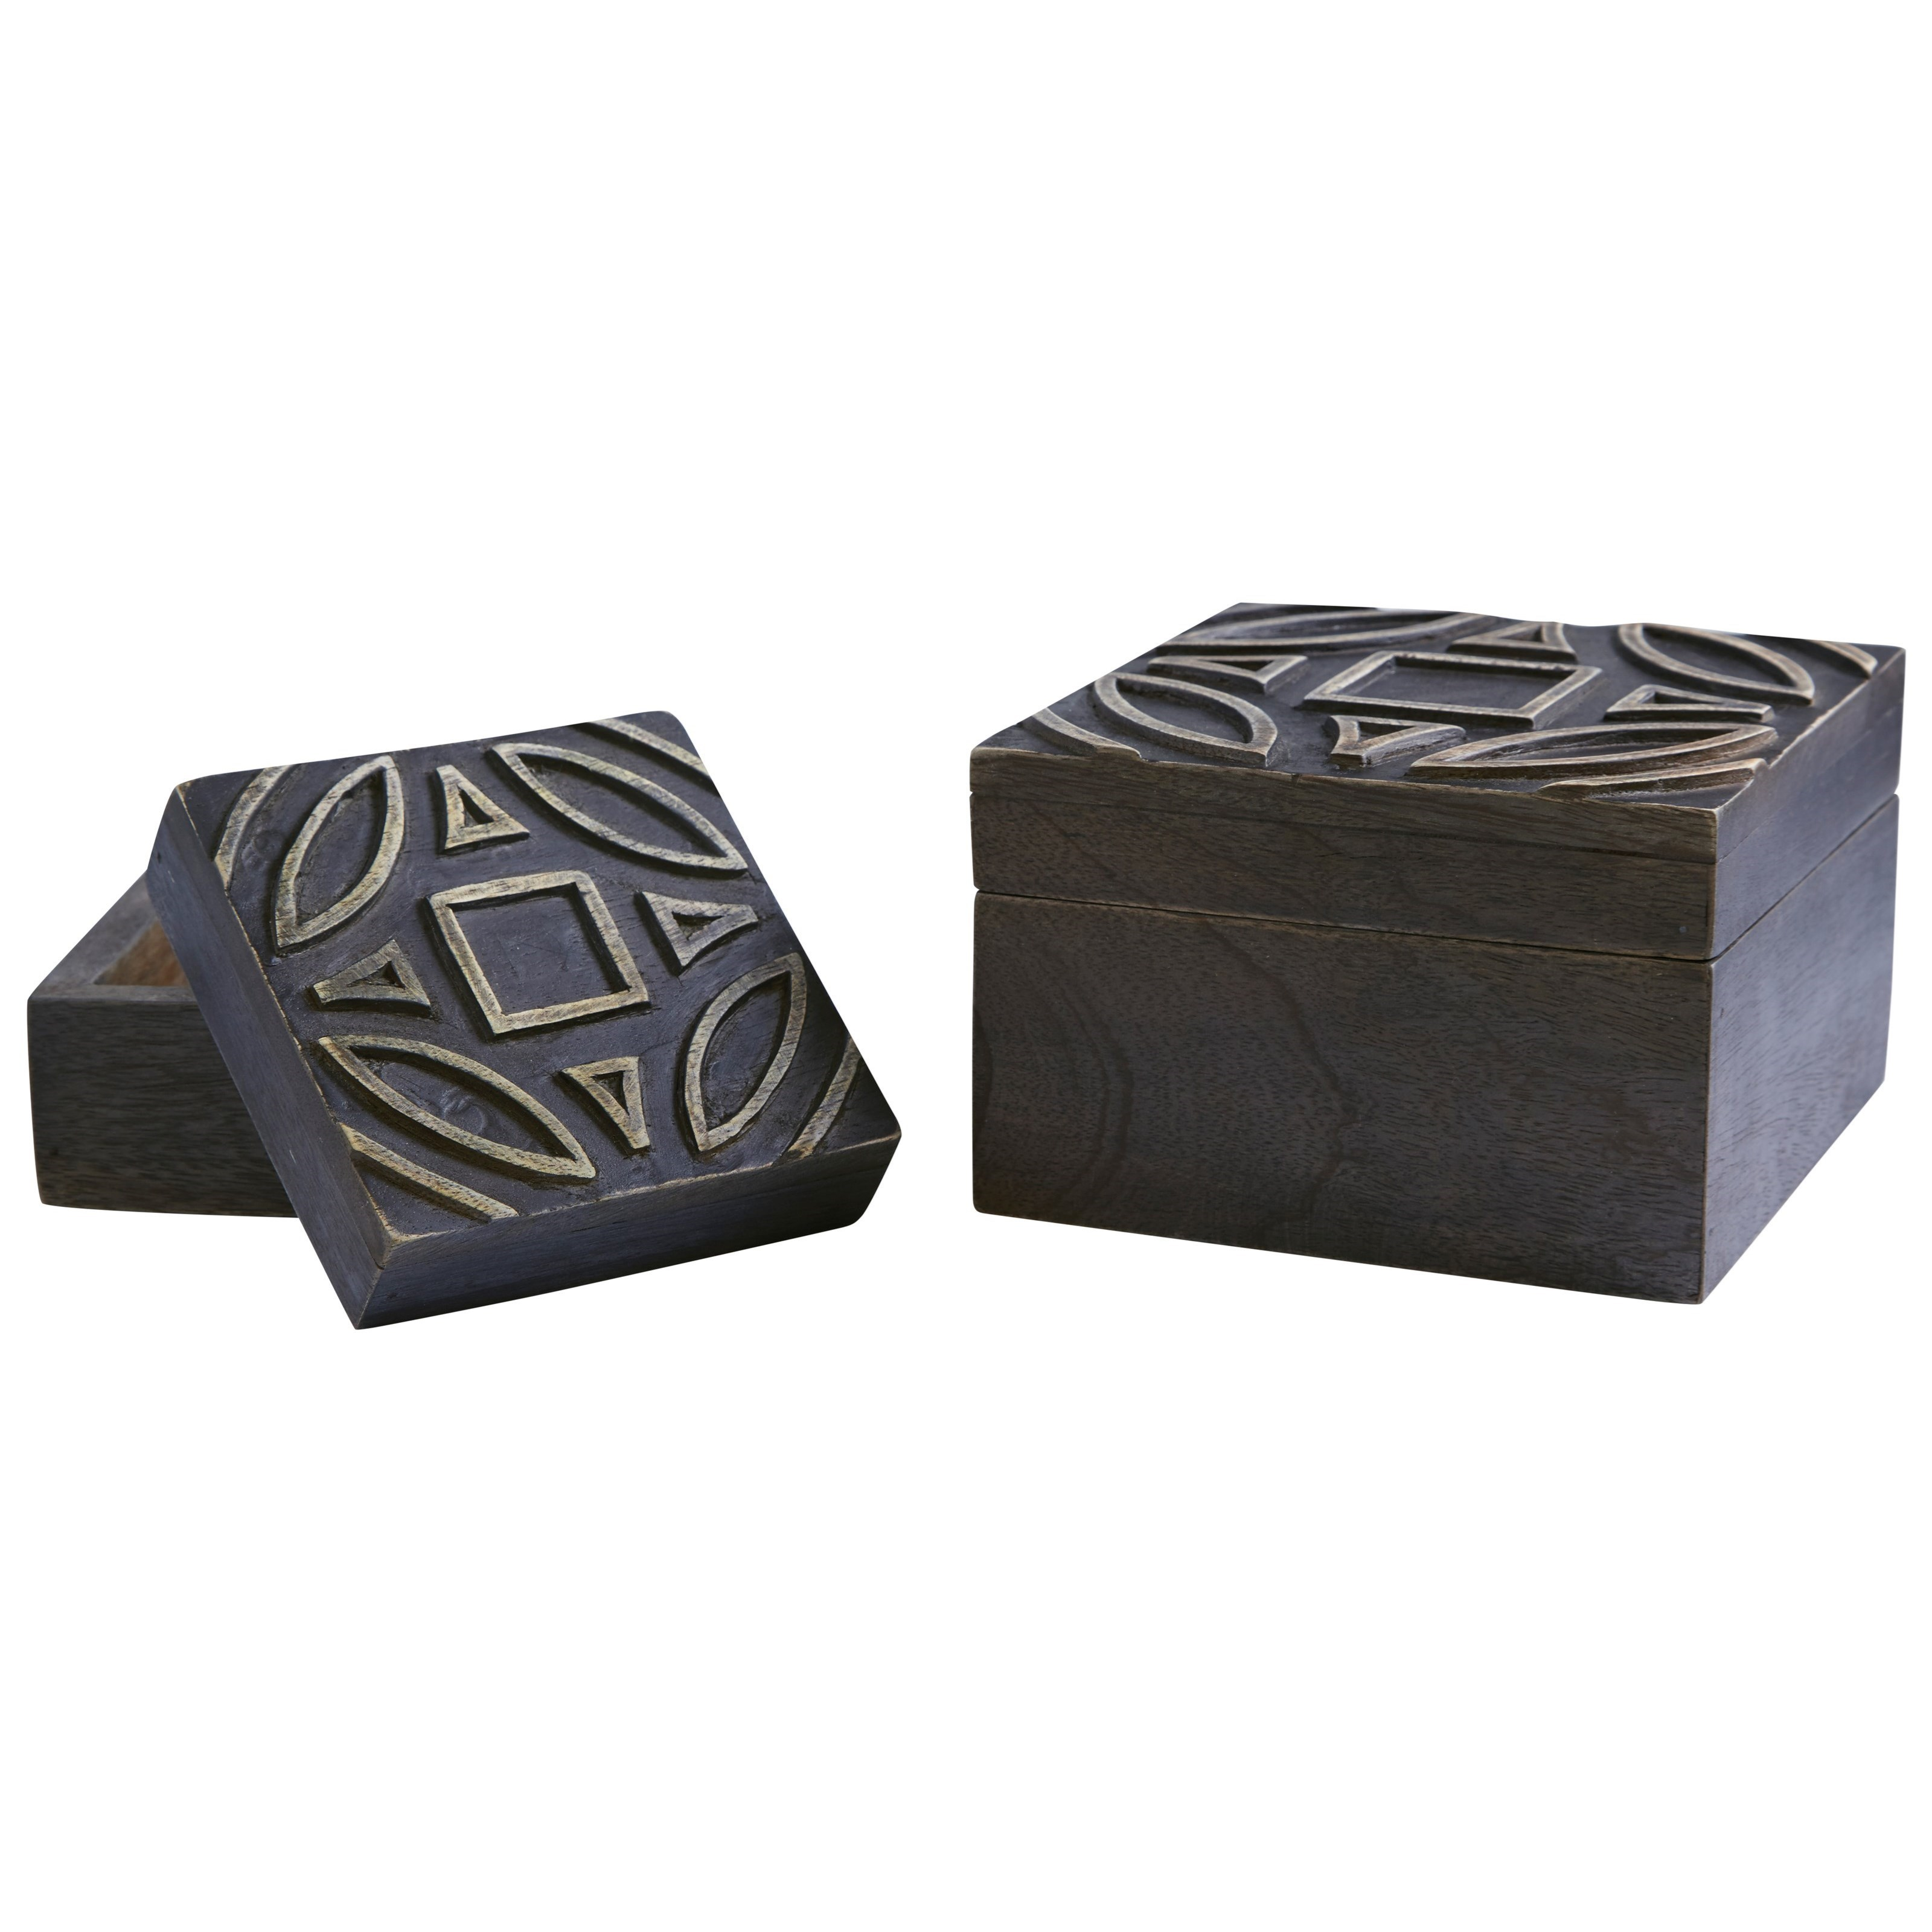 Signature Design by Ashley Accents Marquise Antique Black Boxes (Set of 2) - Item Number: A2000184B